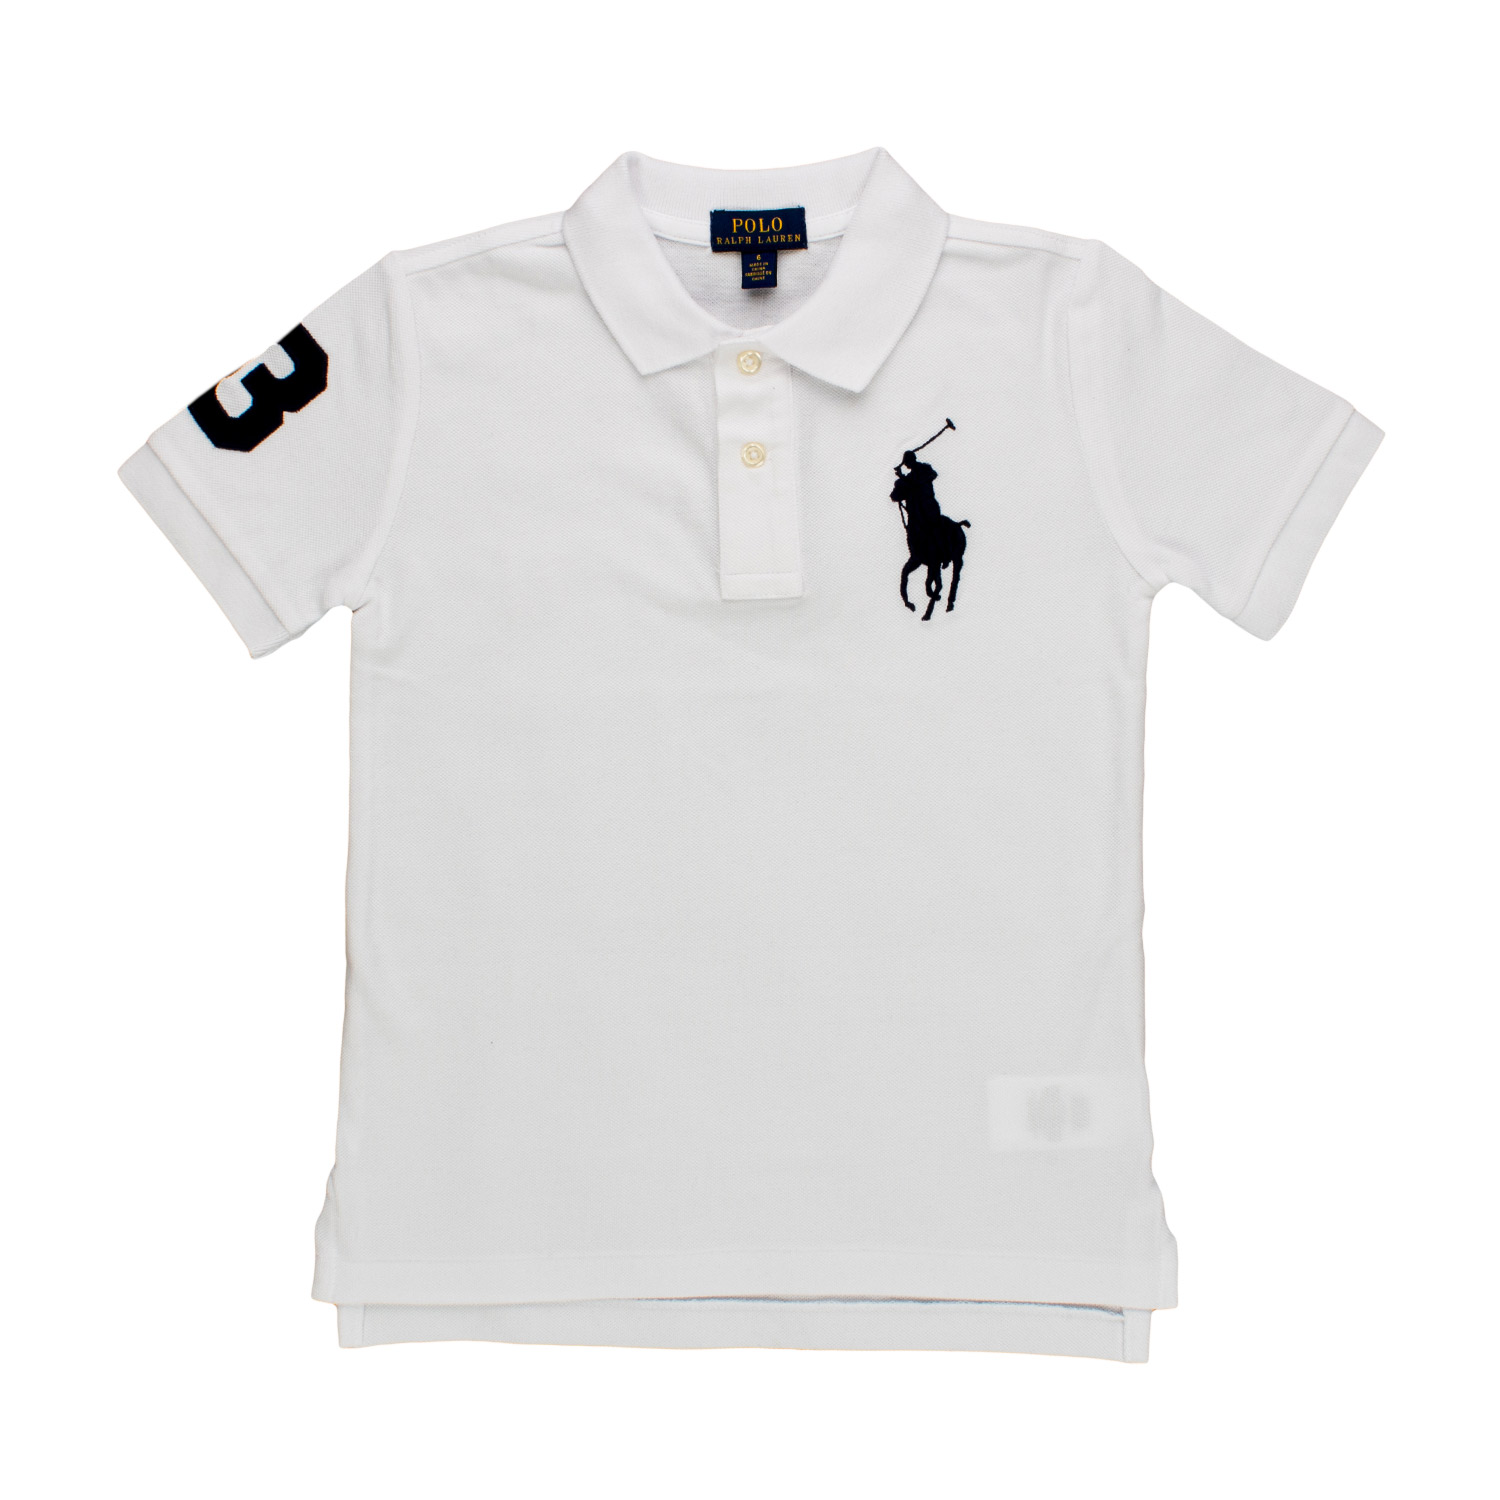 8e6b155e3 Home · RALPH LAUREN · T-Shirt Polo Camicie  Polo Big Pony Bambino Teen.  28357-ralph lauren polo big pony bambino teen-1.jpg